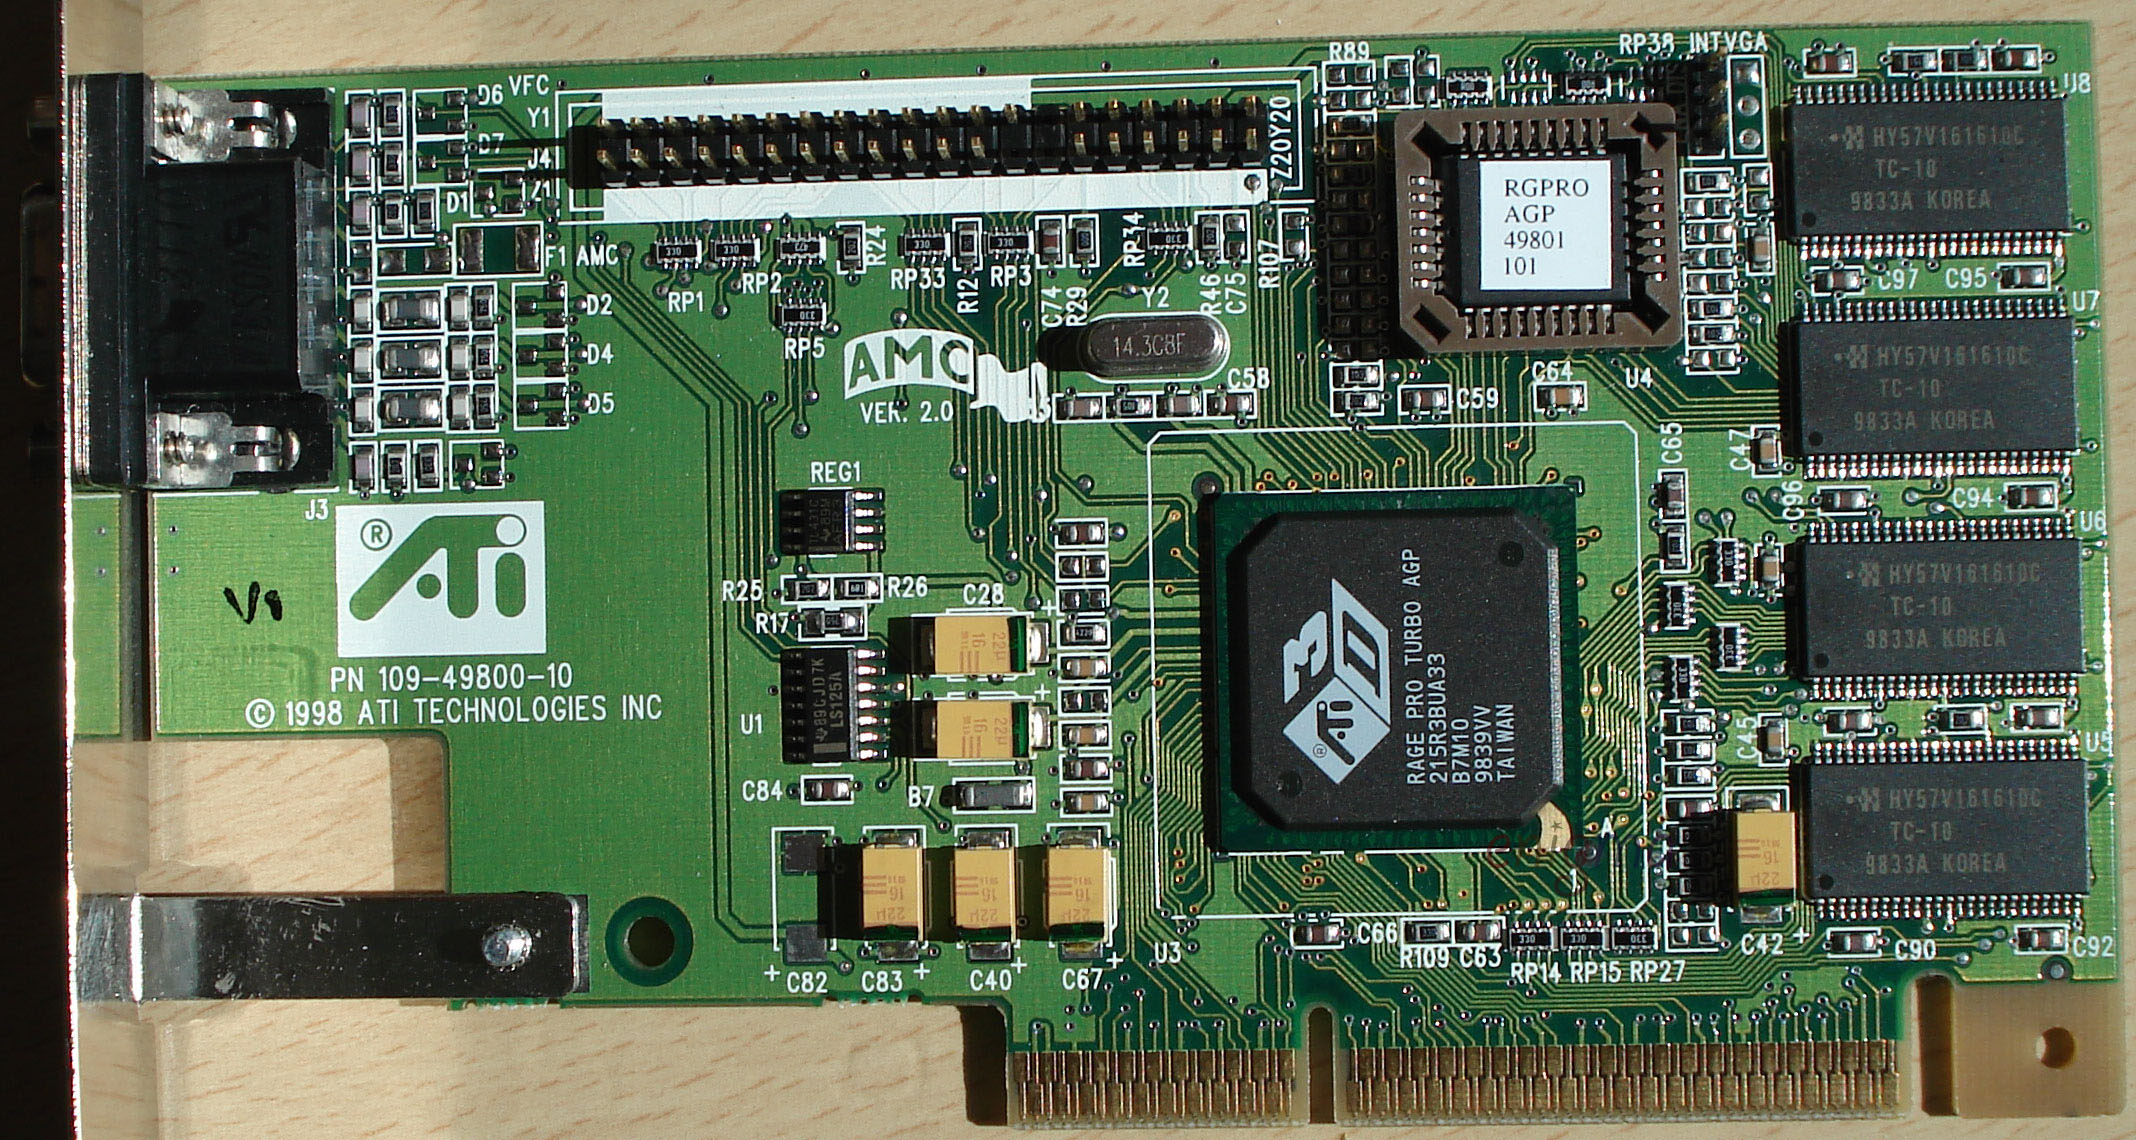 Drivers Installer for RAGE PRO TURBO AGP 2X